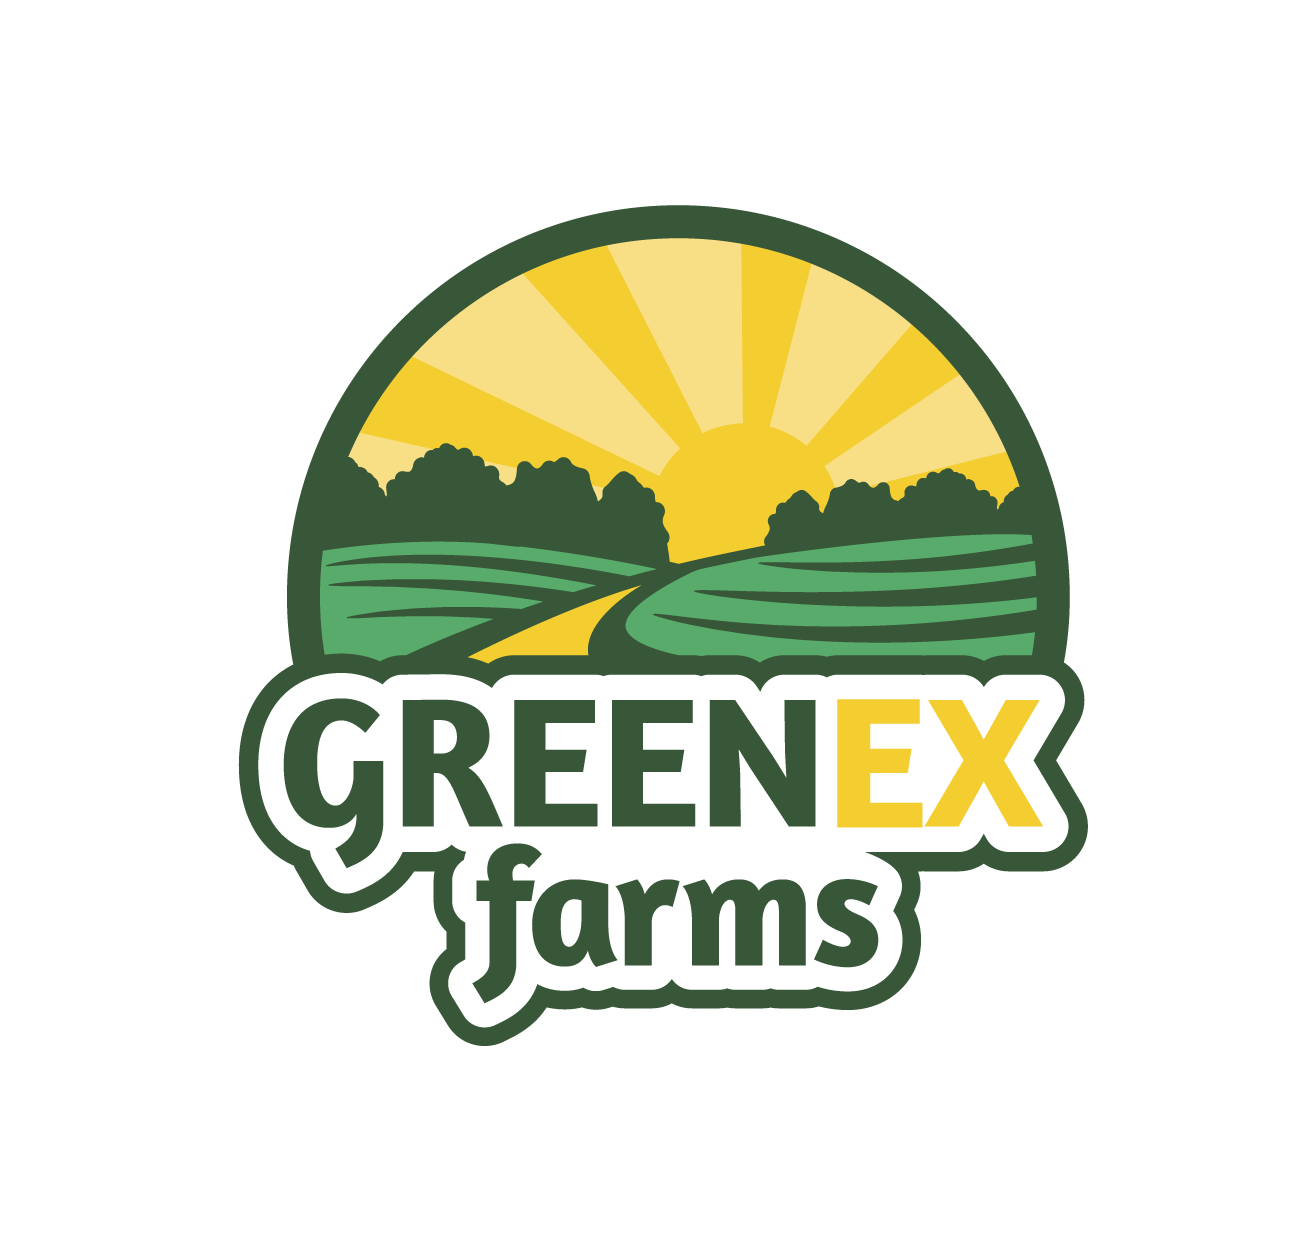 Greenex Farms